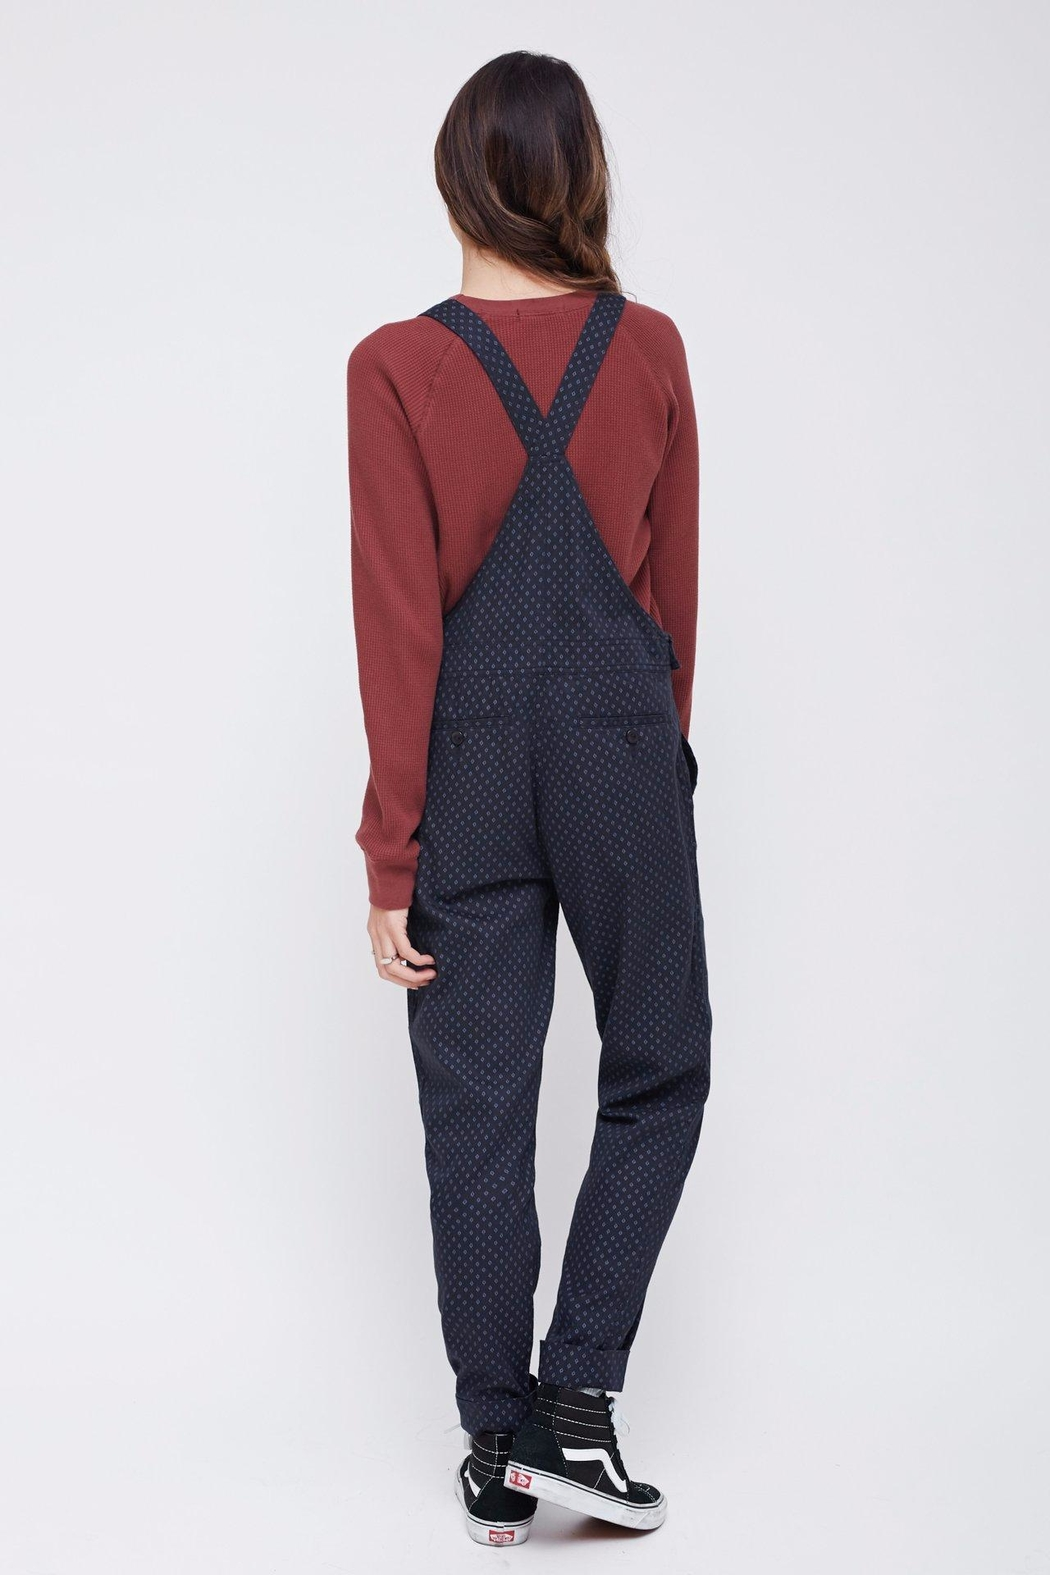 Obey Patterned Bib Overalls - Side Cropped Image